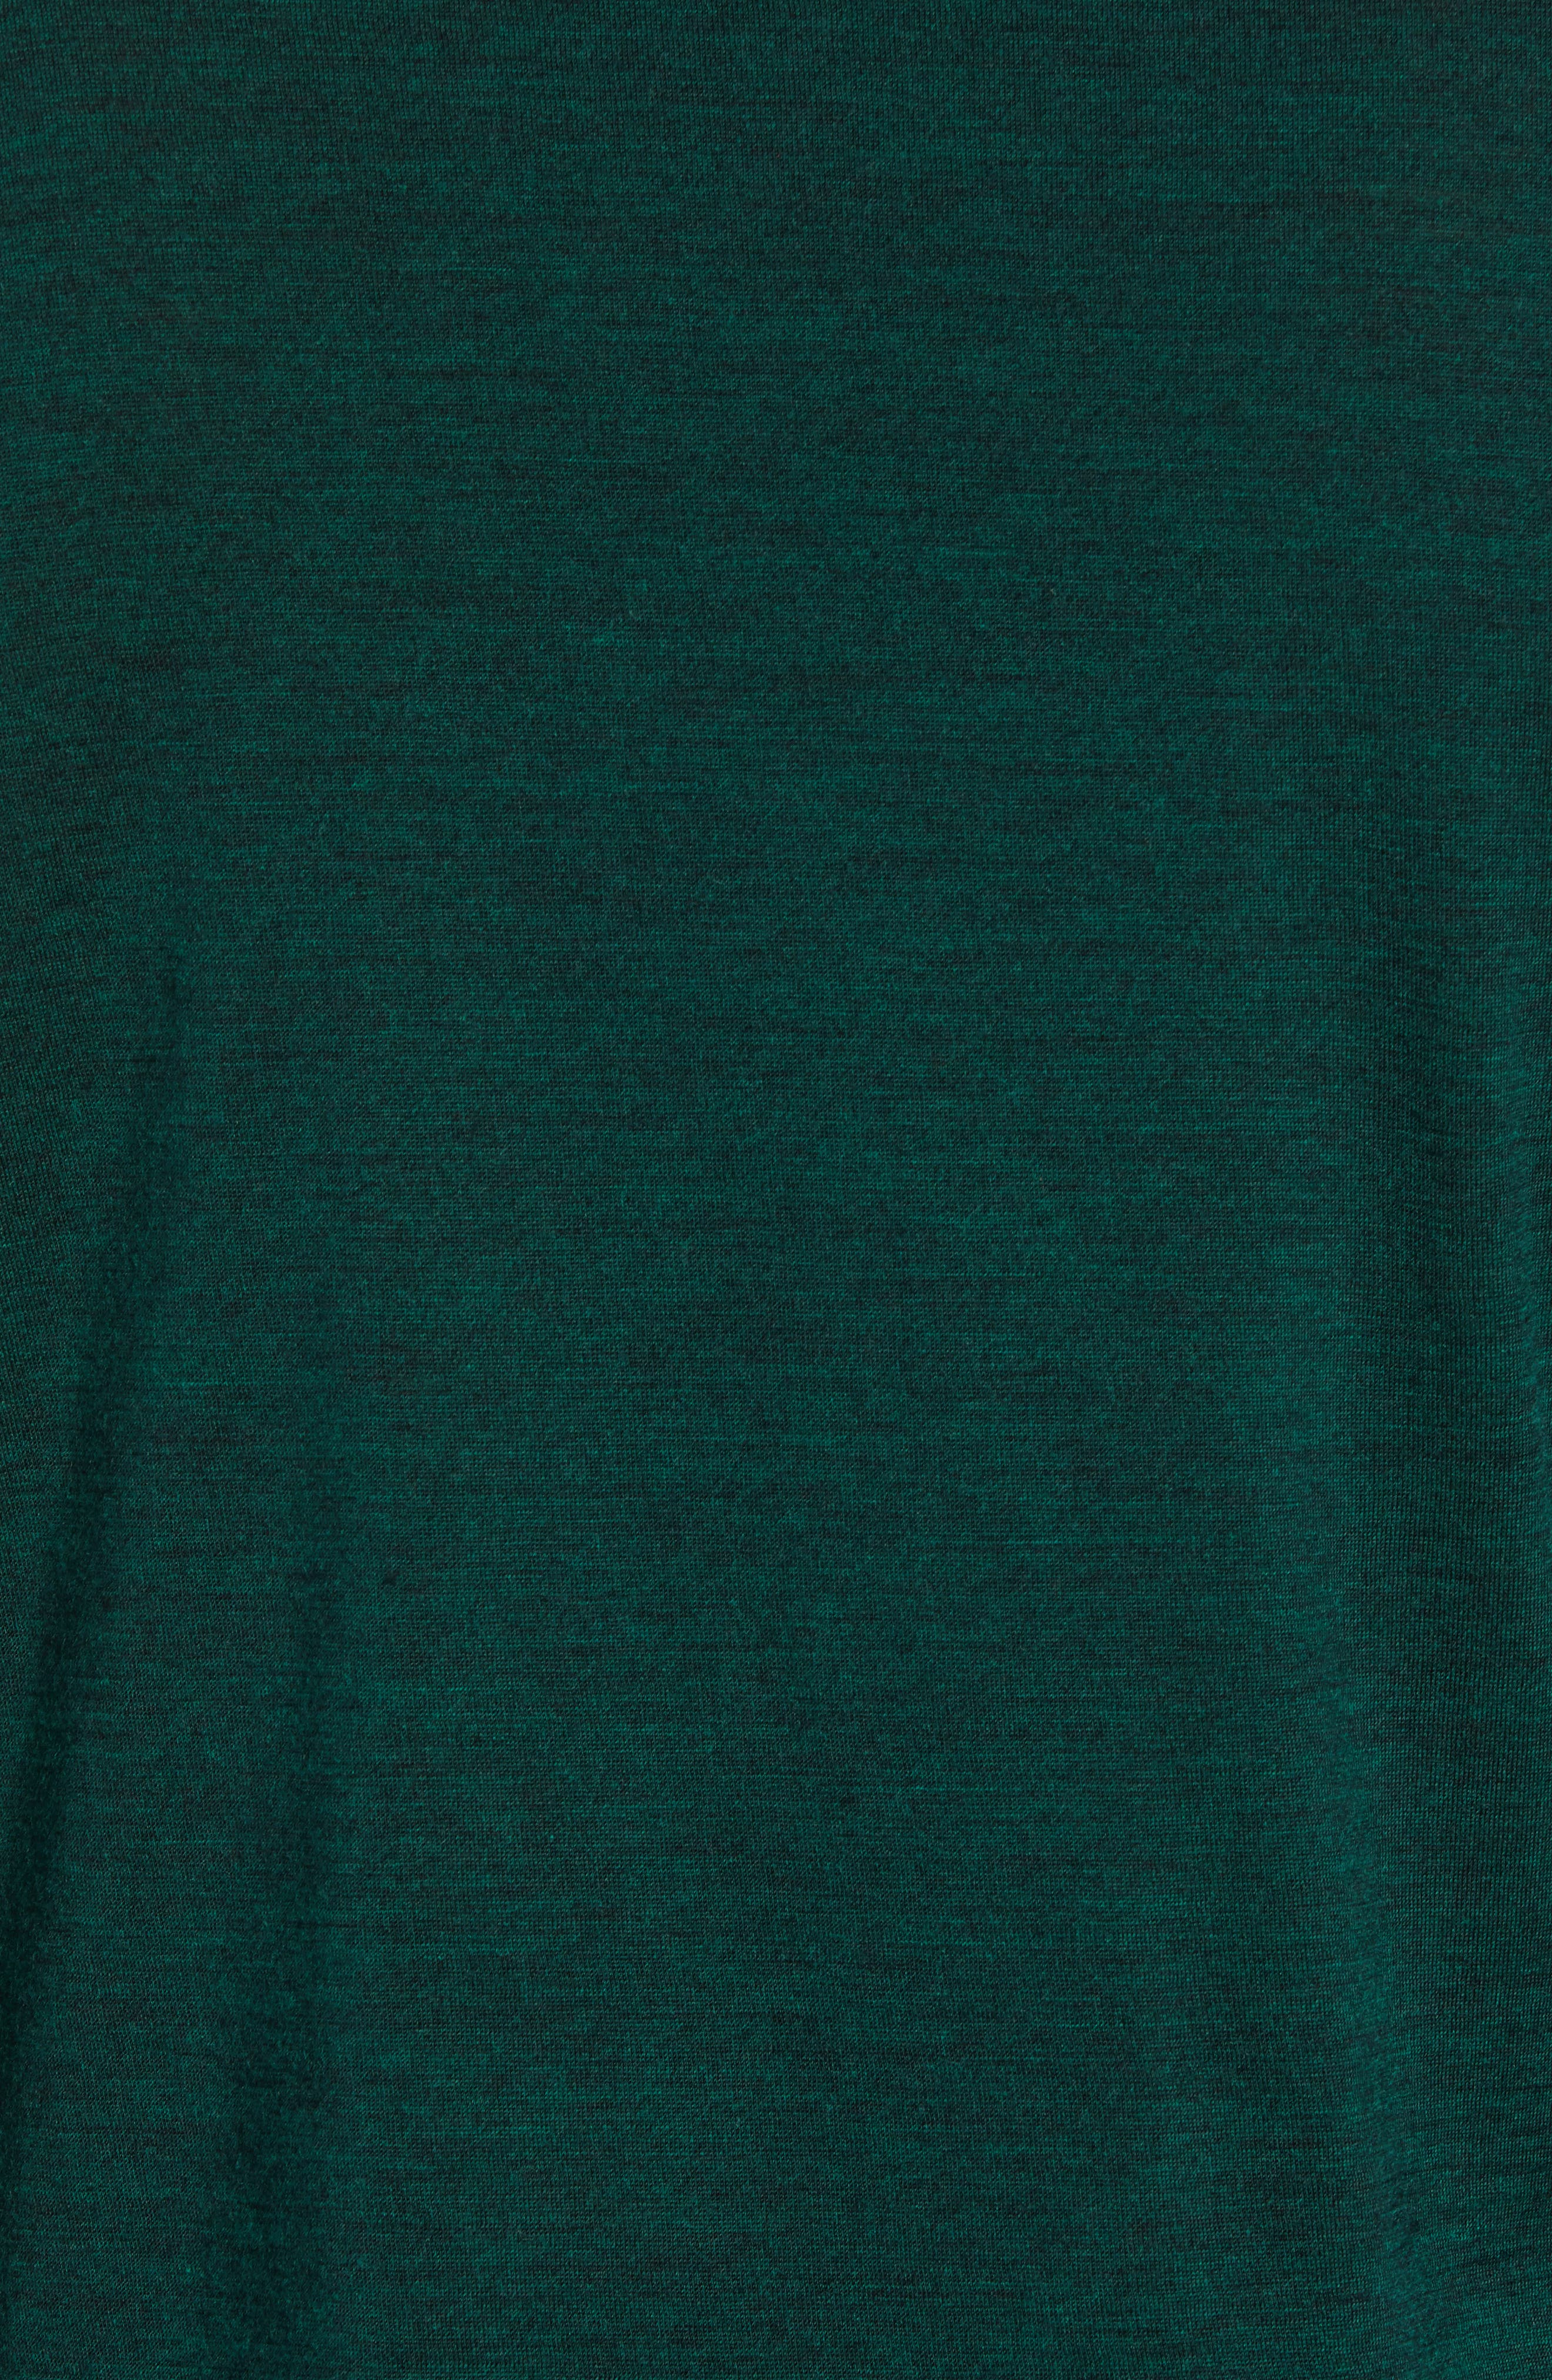 Oasis Slim Merino Wool T-Shirt,                             Alternate thumbnail 5, color,                             IMPERIAL HEATHER